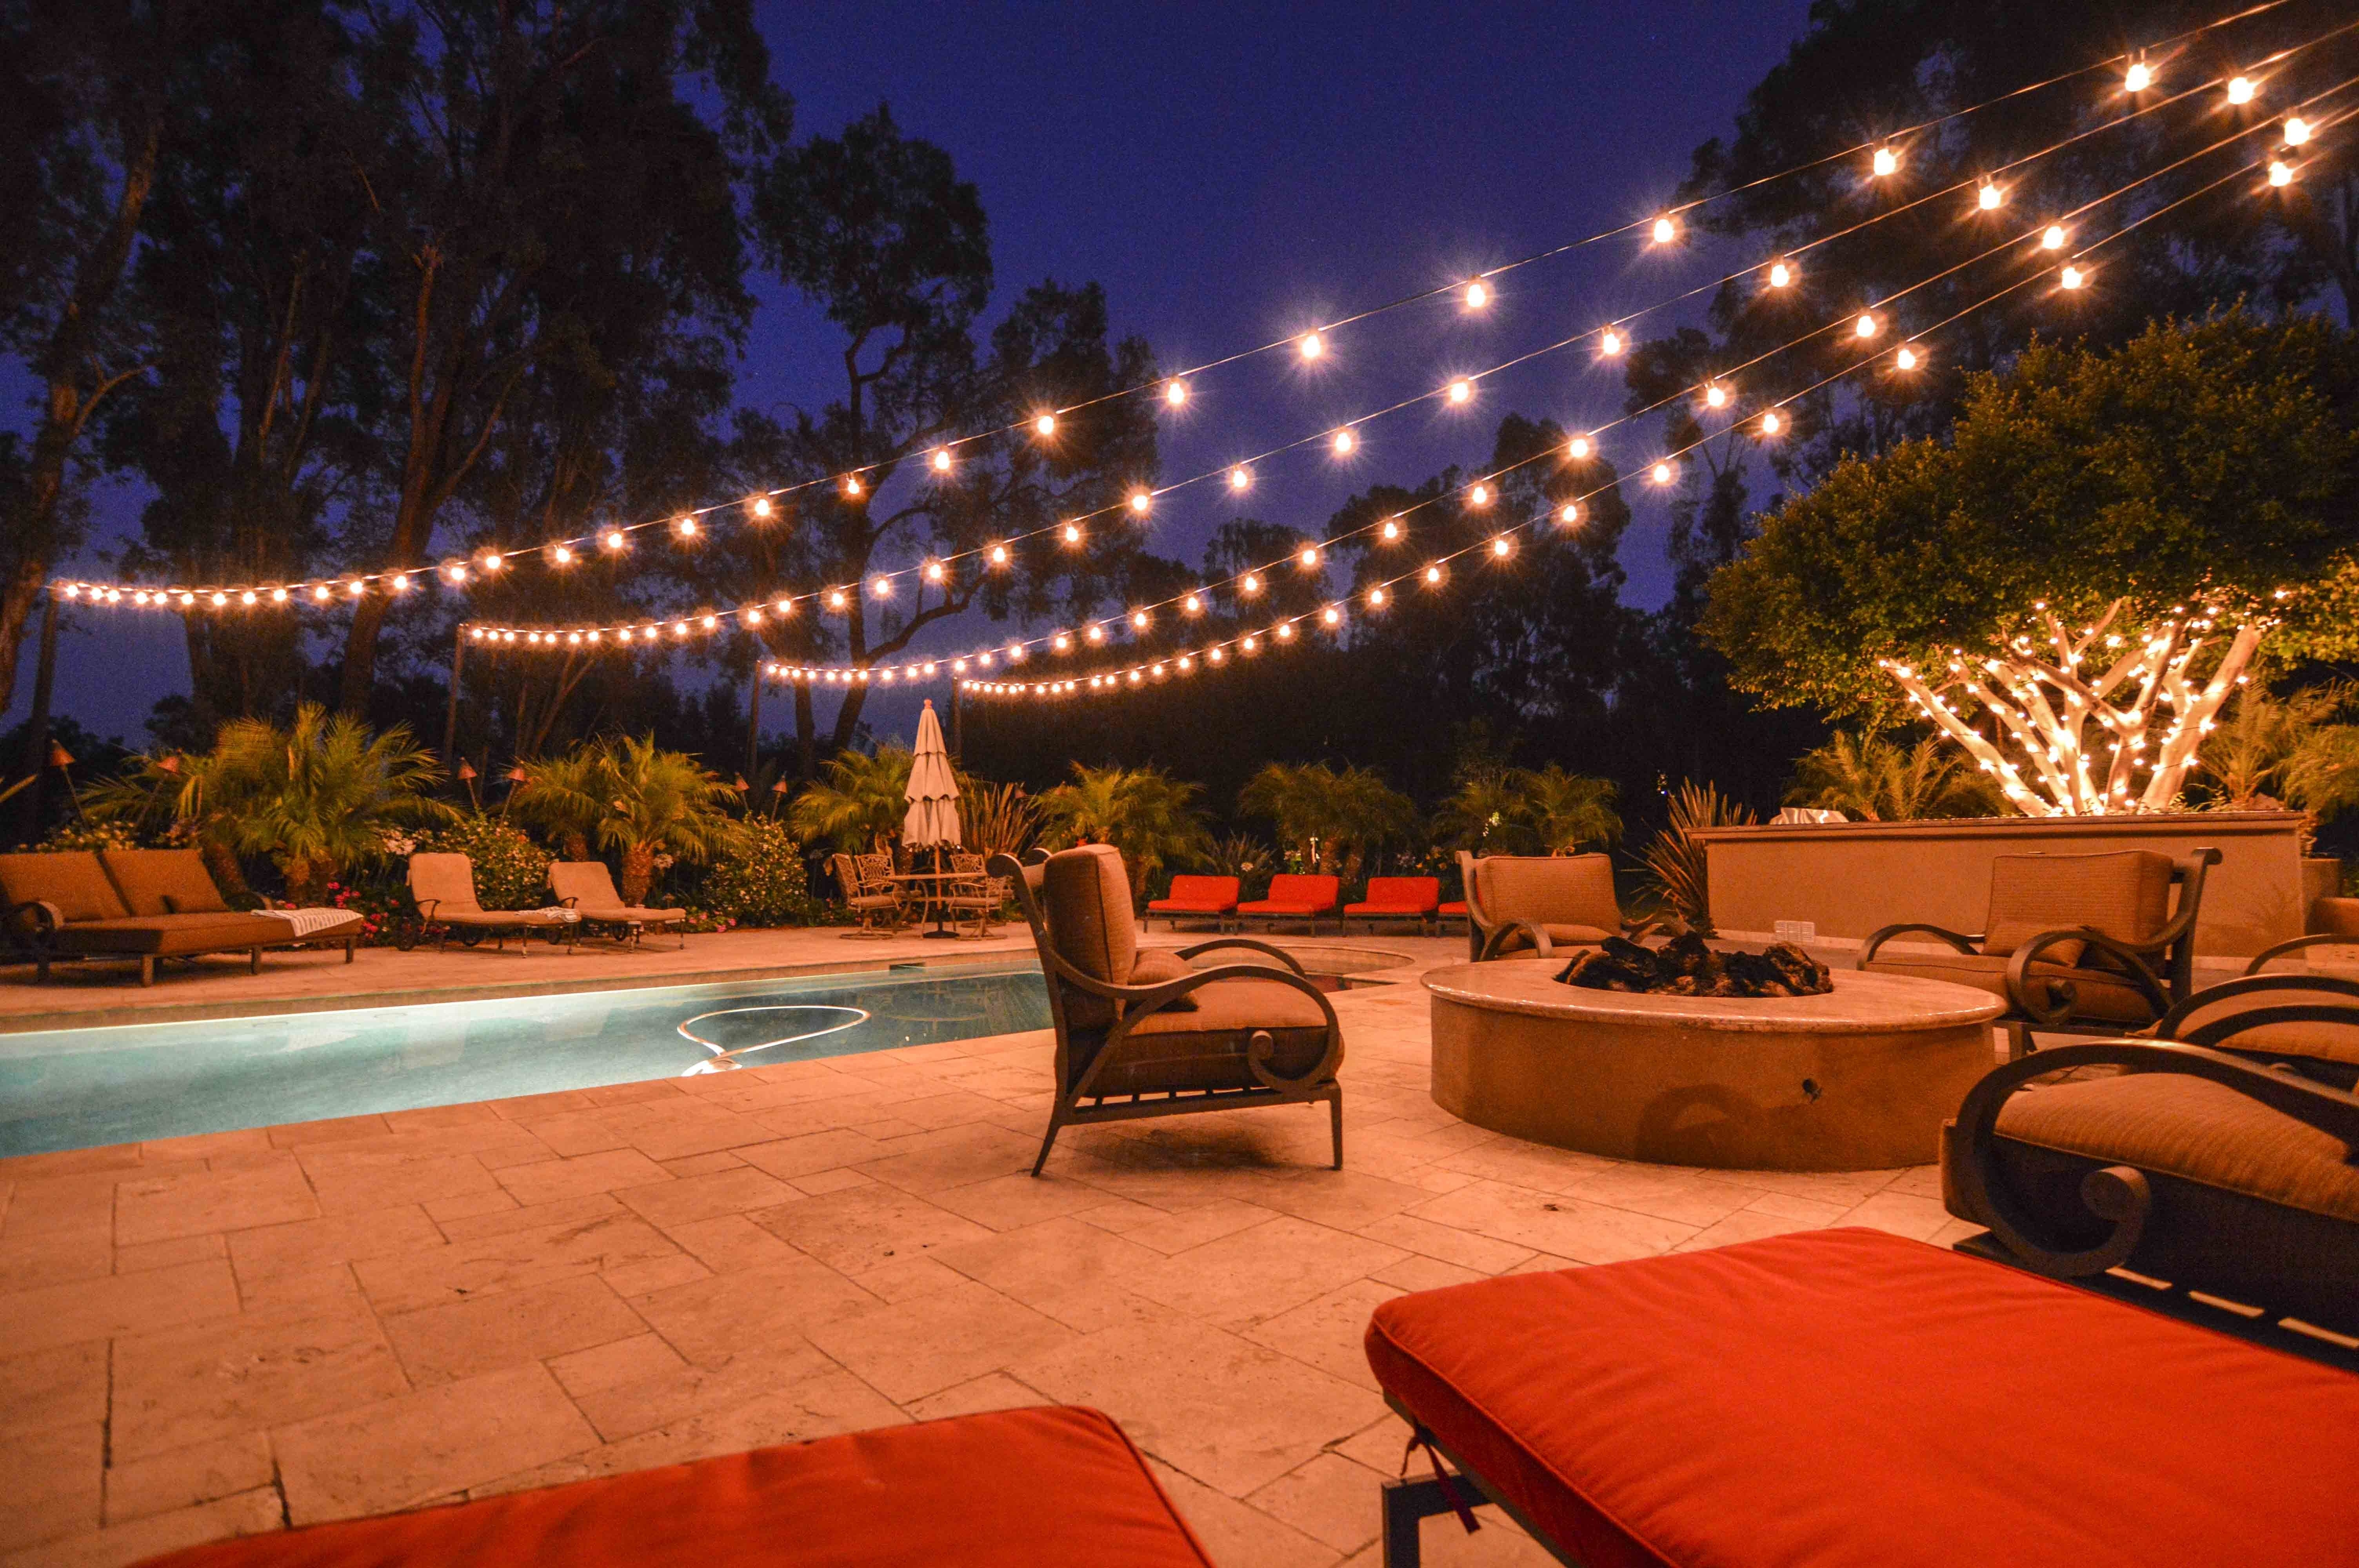 Market Lights At A Backyard Wedding In A Starburst Display Over A within Outdoor Lanterns For Poolside (Image 11 of 20)